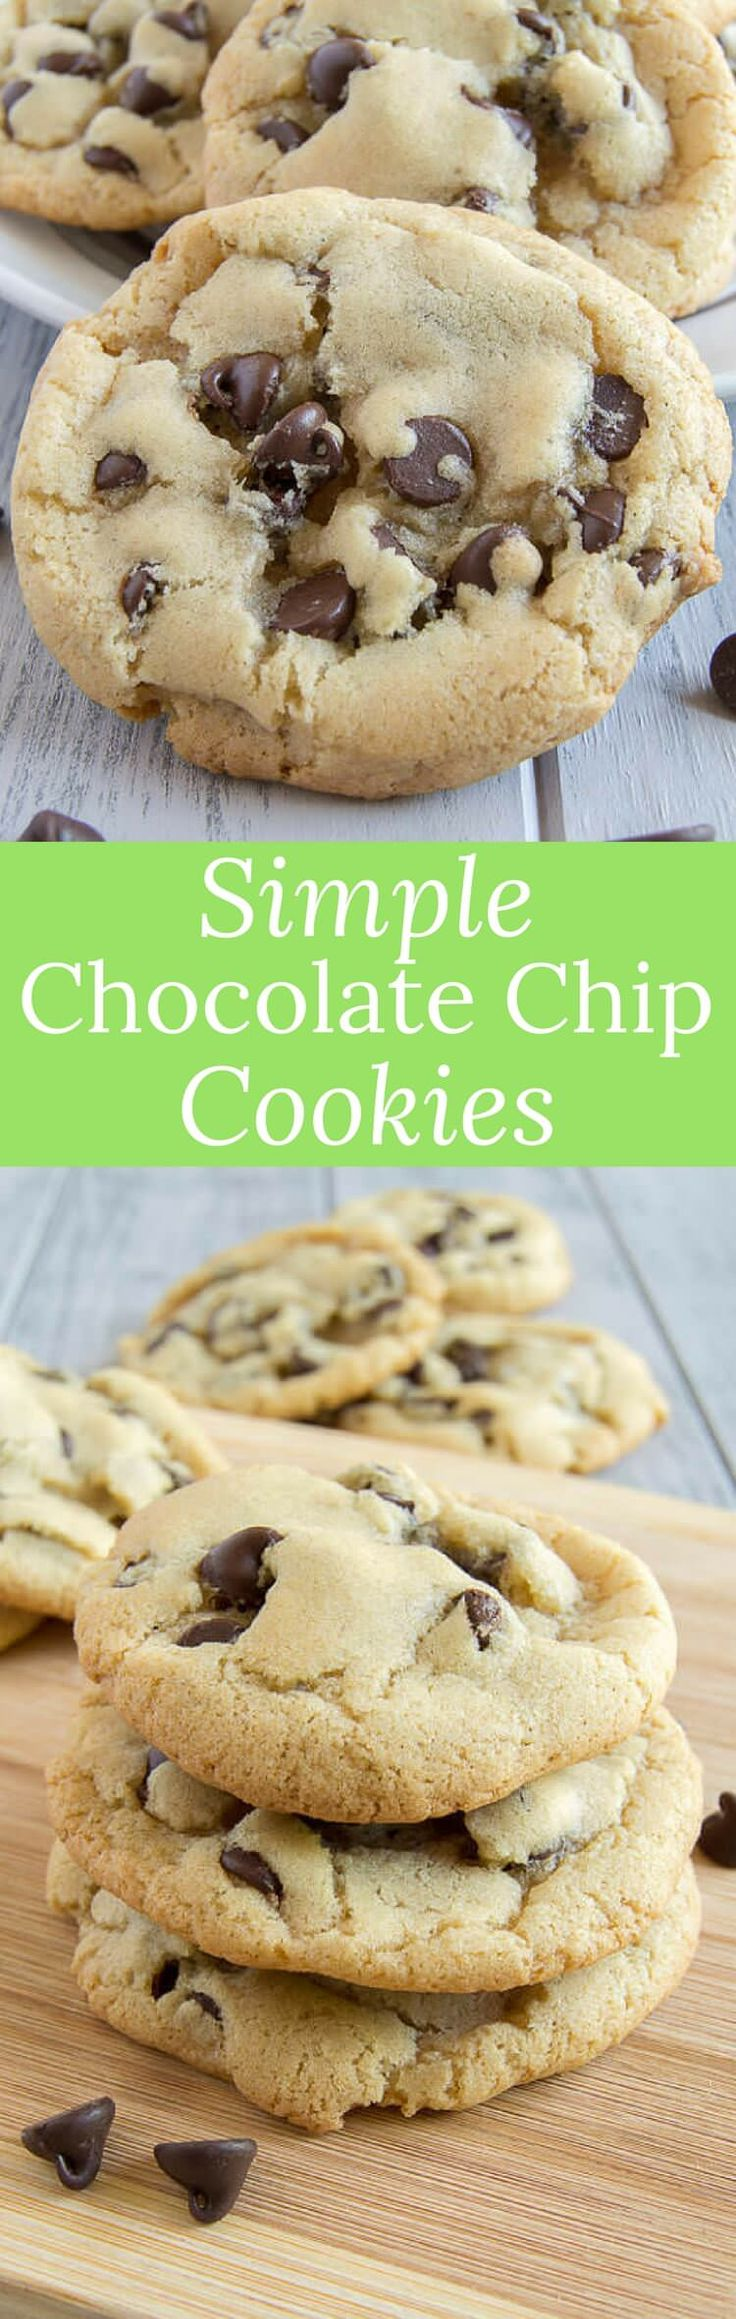 Chip Cookies on Pinterest | Chocolate chip cookie, Easy chocolate chip ...